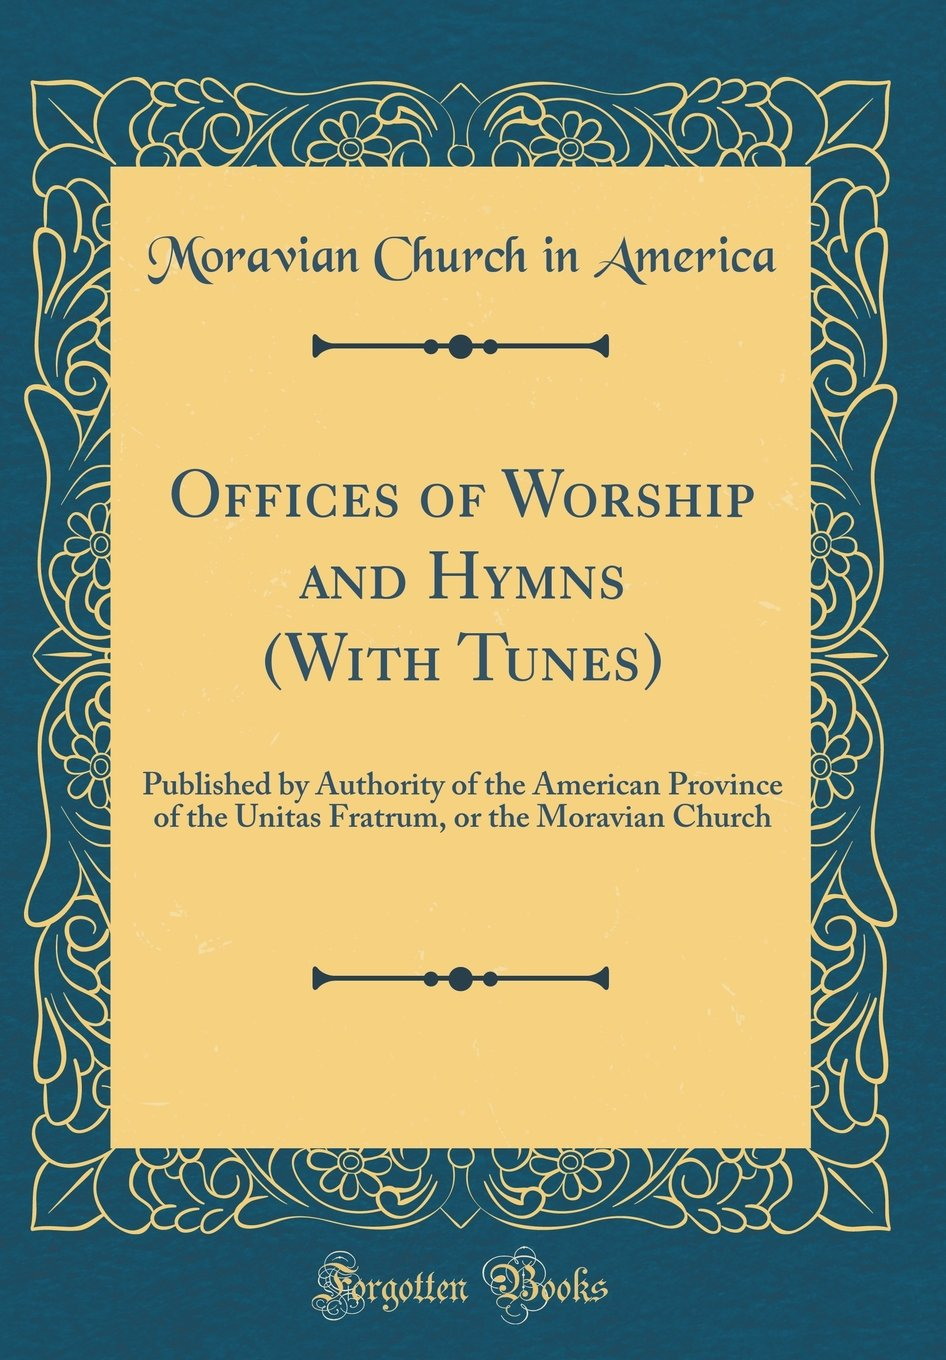 Offices of Worship and Hymns (With Tunes): Published by Authority of the American Province of the Unitas Fratrum, or the Moravian Church (Classic Reprint) pdf epub